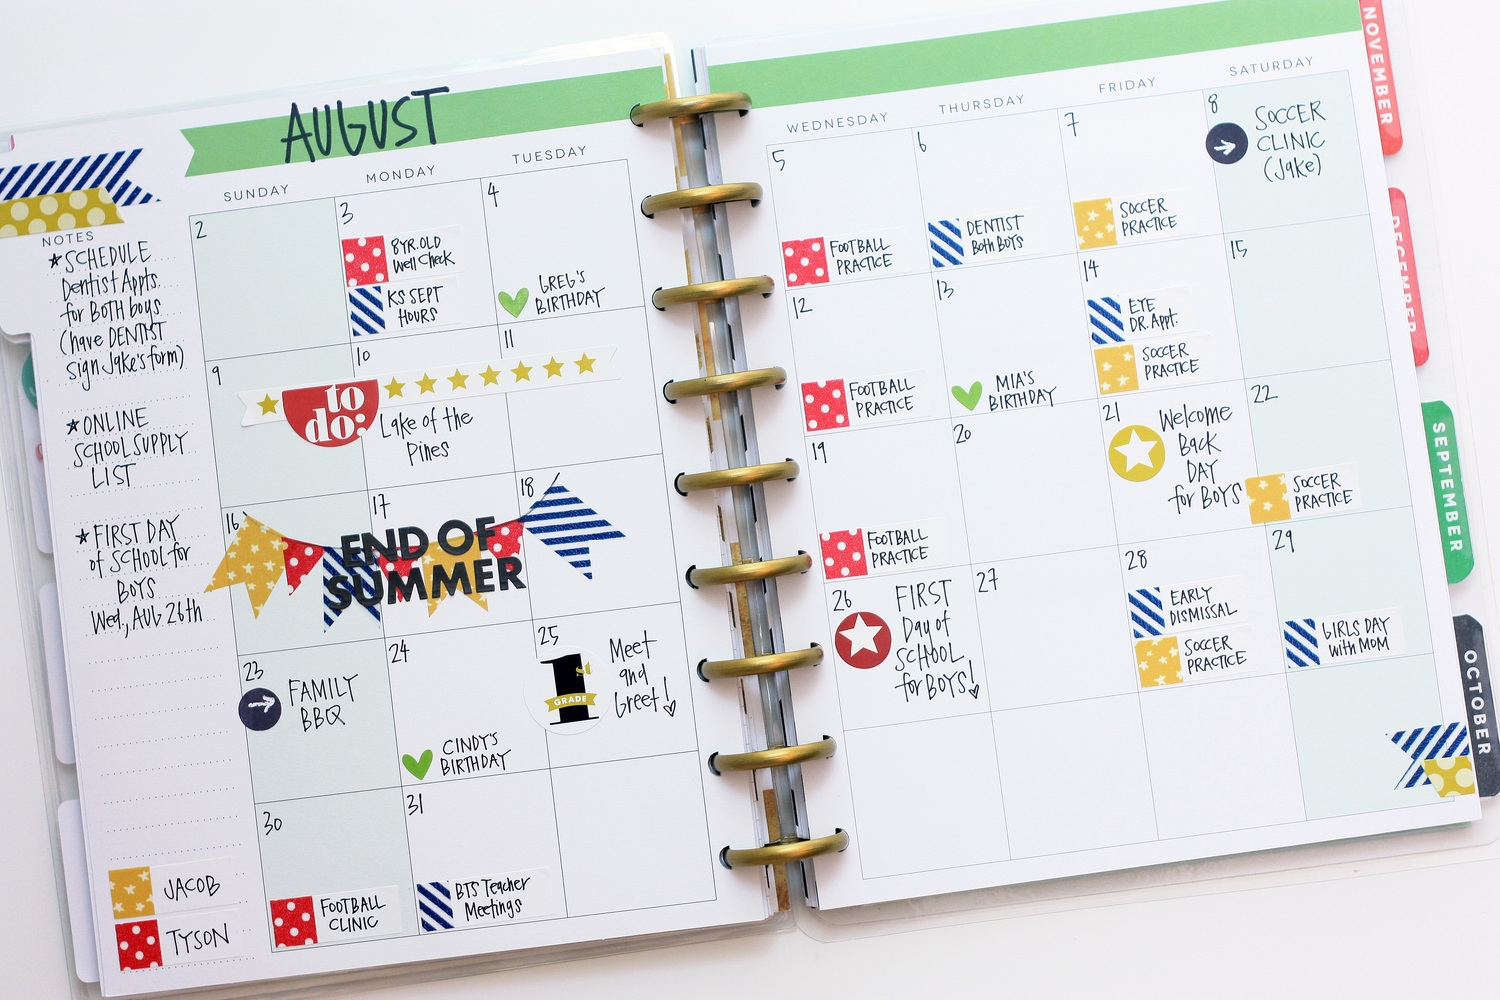 'Back to School' August monthly spread